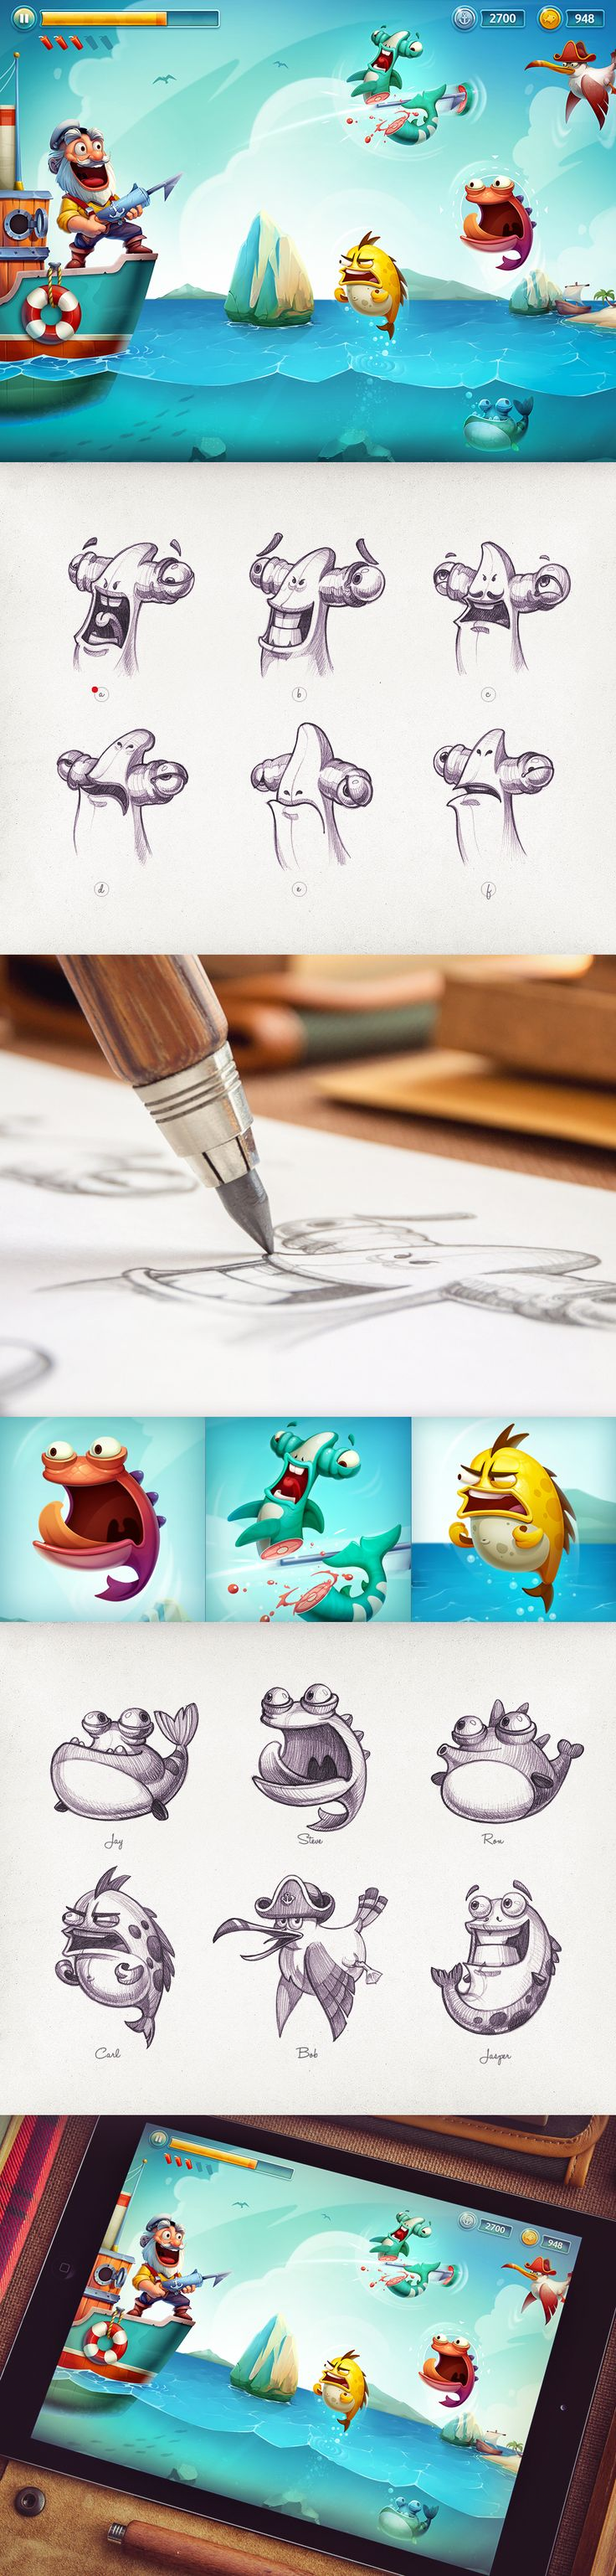 Ios Game Character Design ☆ Find More At Http://www.pinterest.